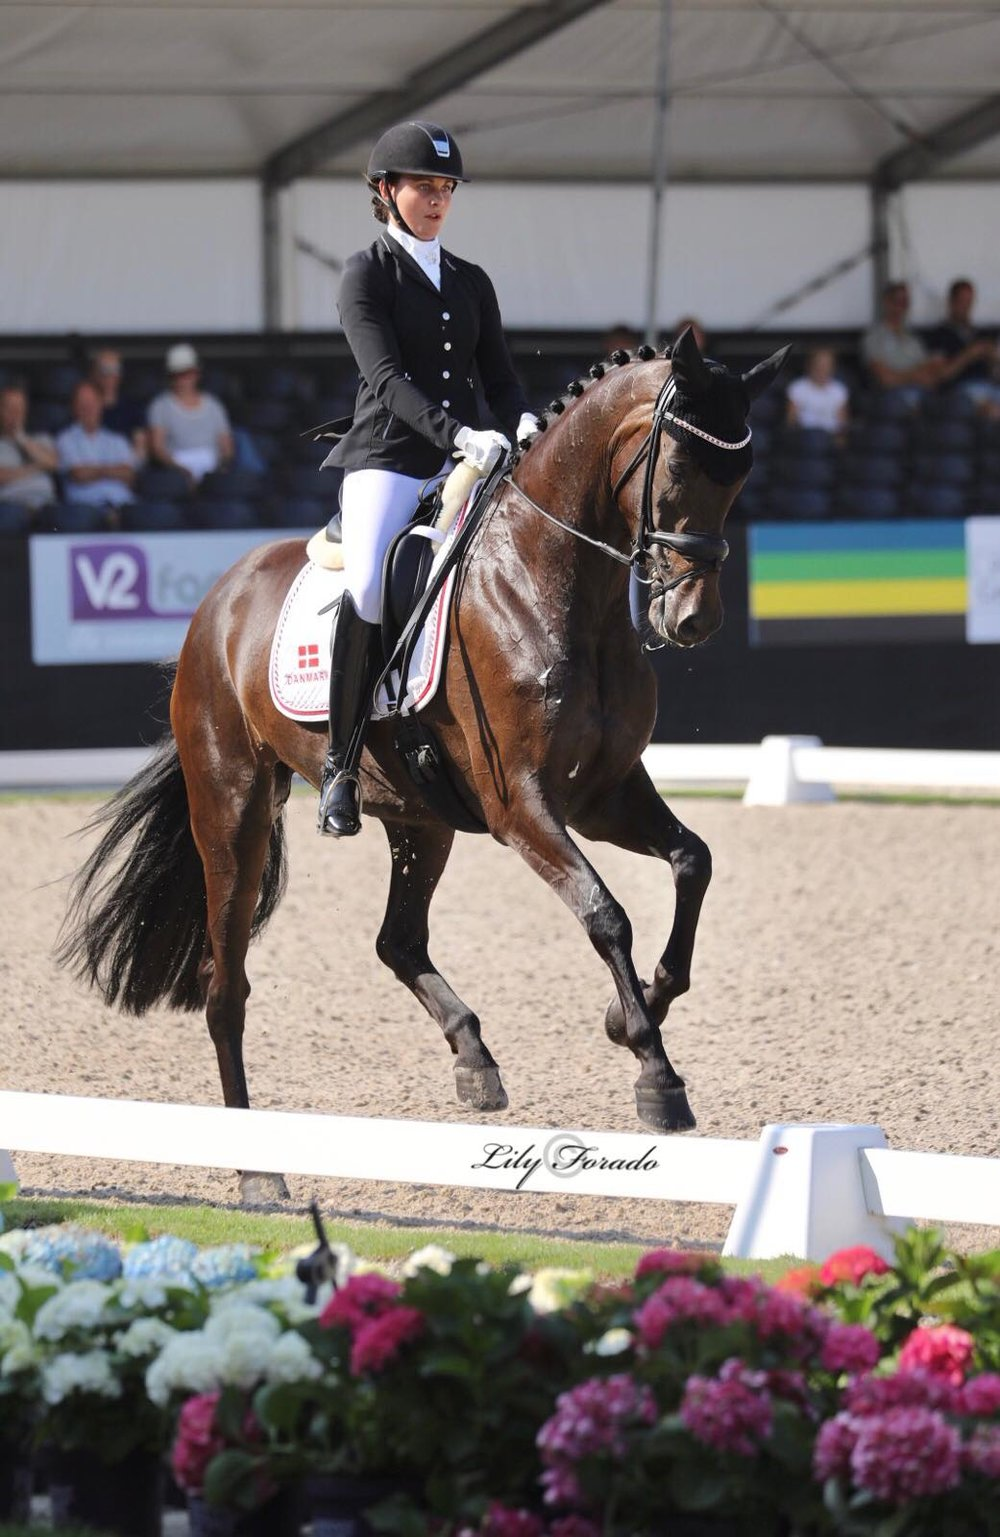 Danish Warmblood Straight Horse Ascenzione and Victoria E. Vallentin - photo credit: Lily Forado